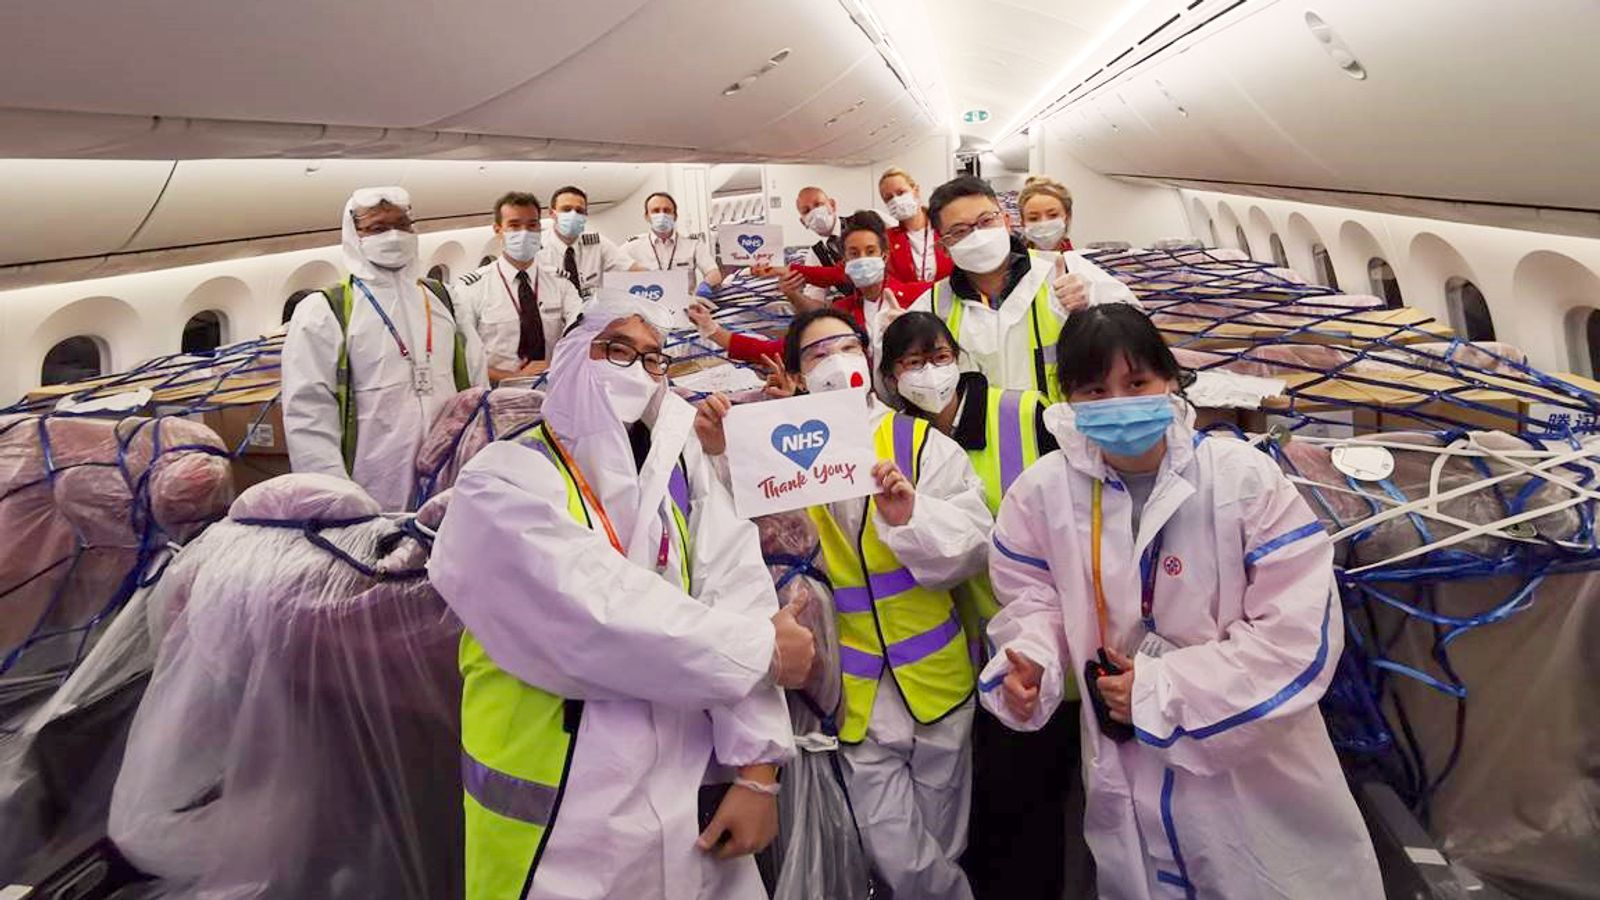 Coronavirus: Virgin flies in millions of pieces of medical equipment from China